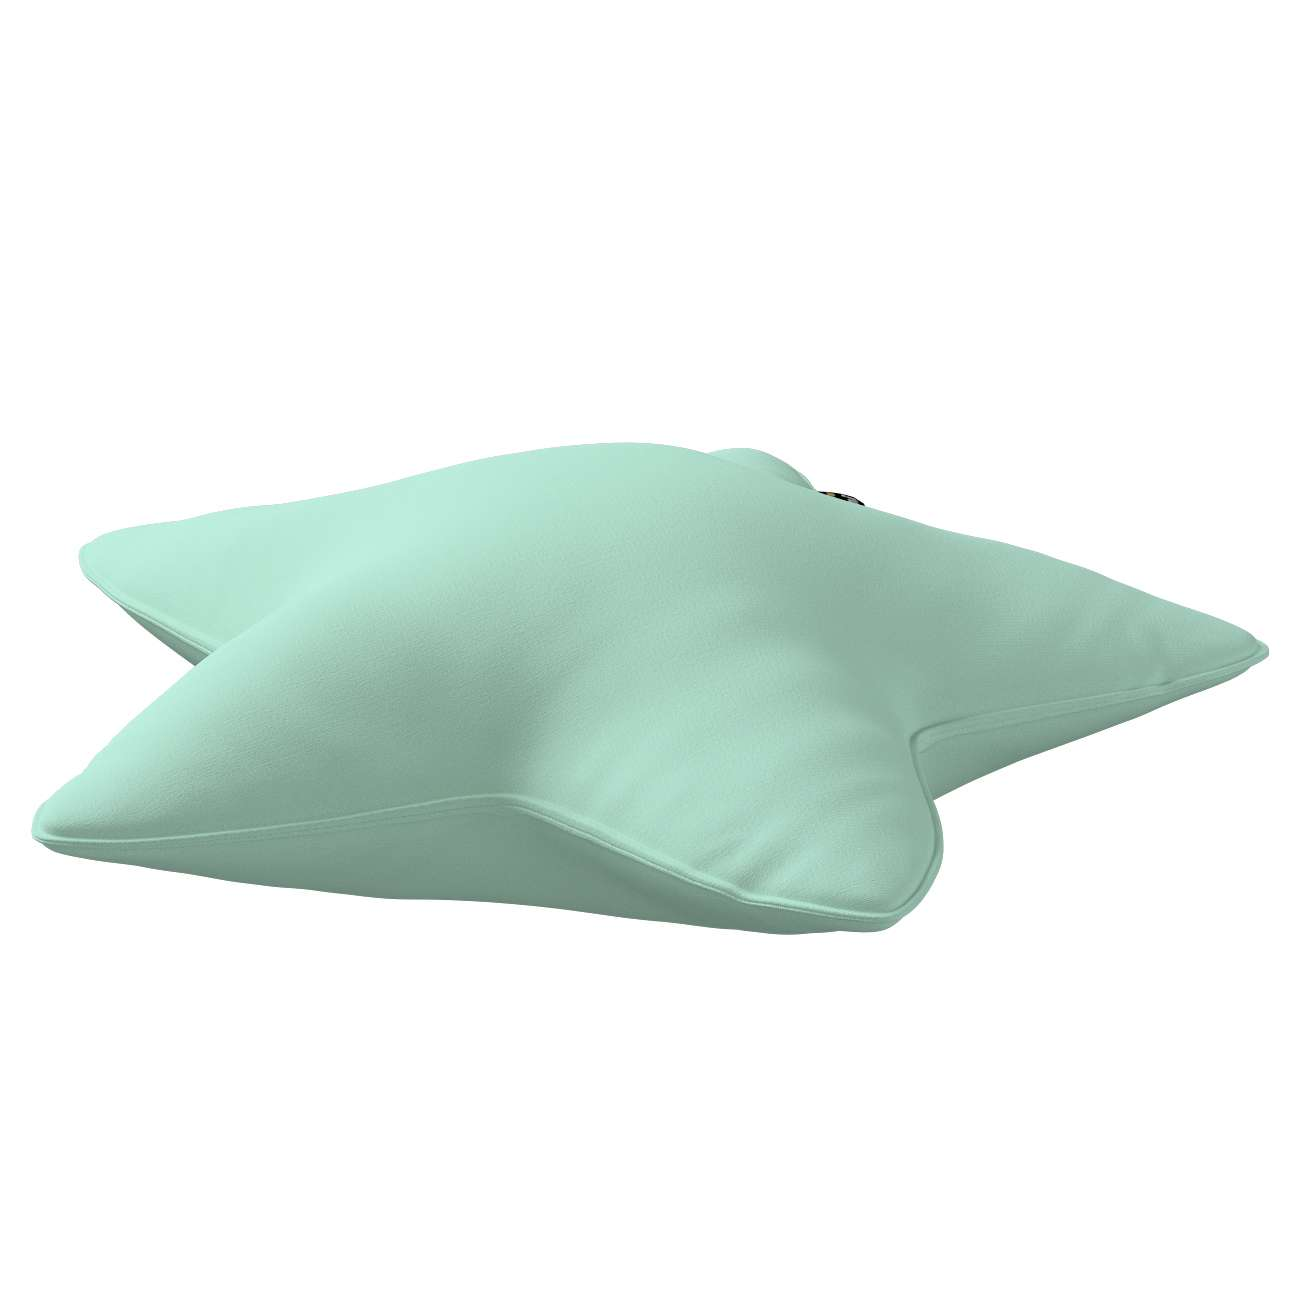 Lucky Star pillow in collection Happiness, fabric: 133-37